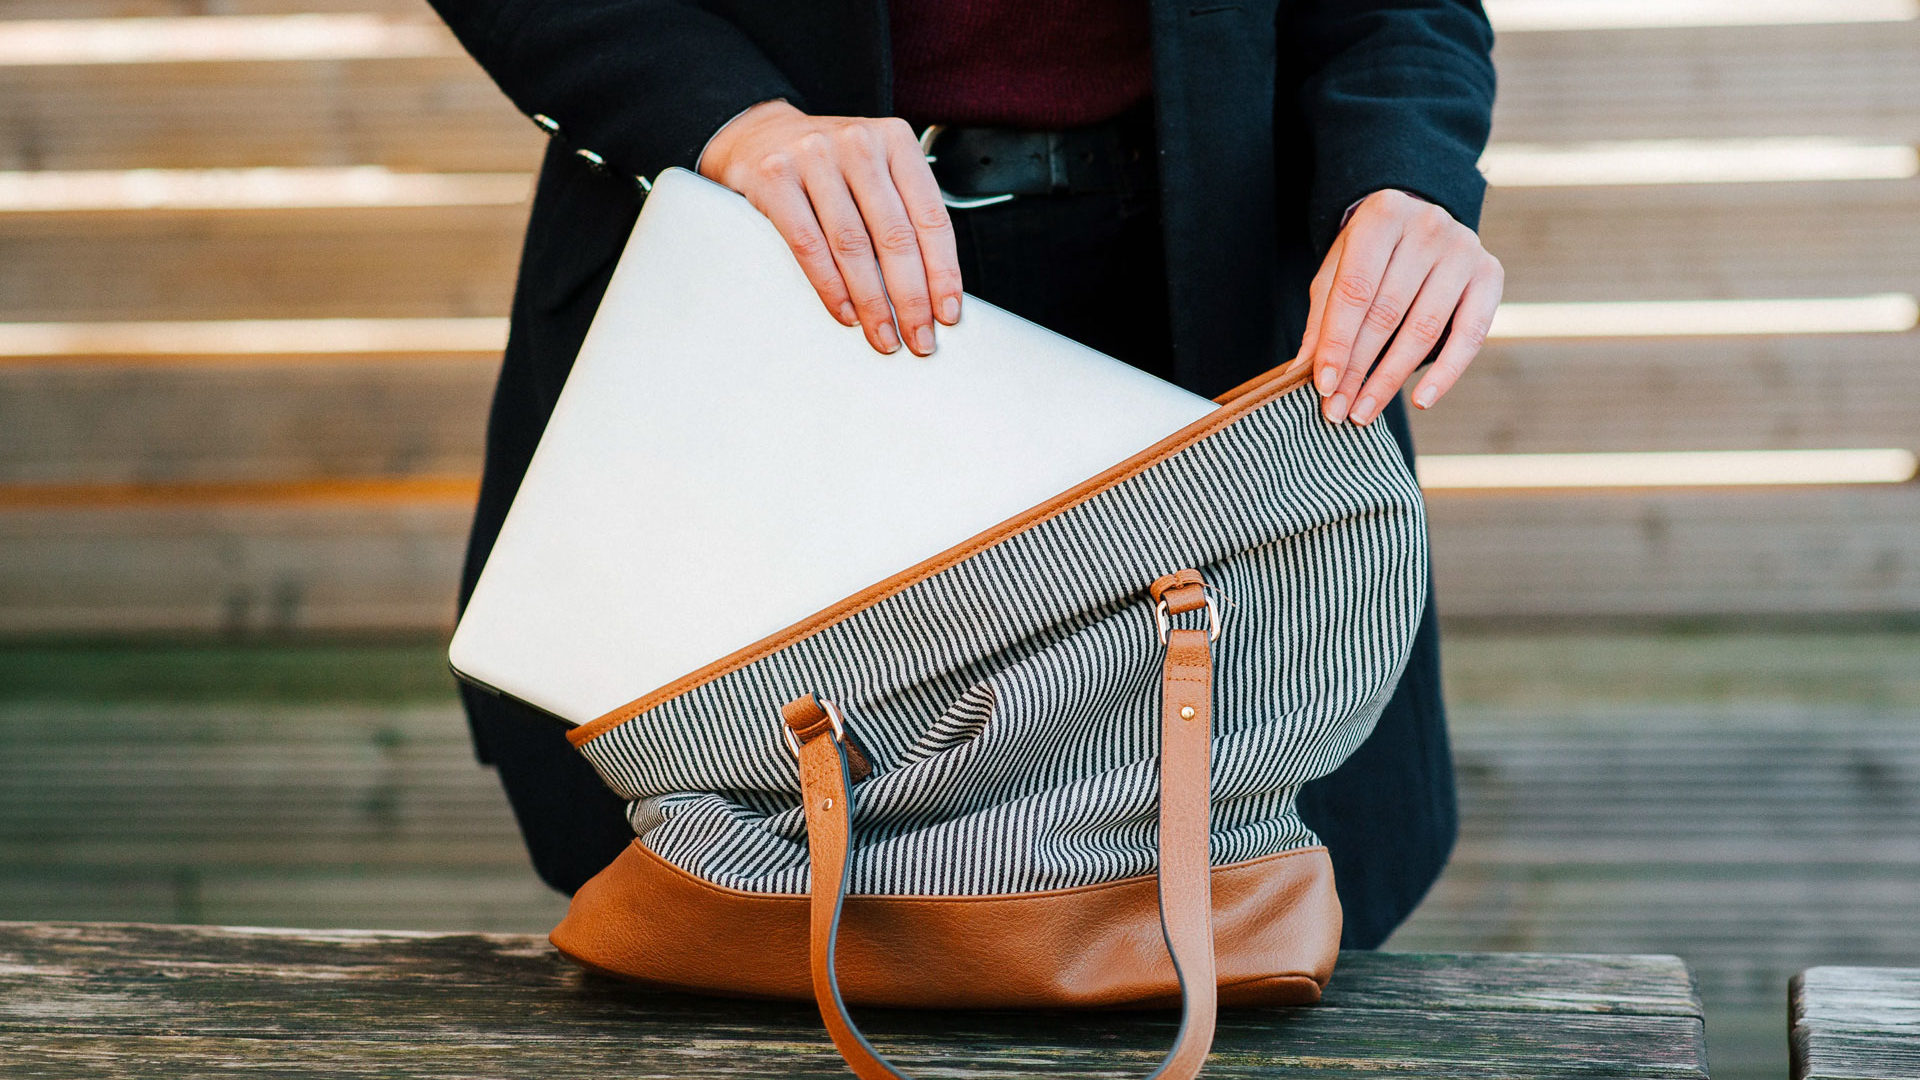 Student putting laptop in bag